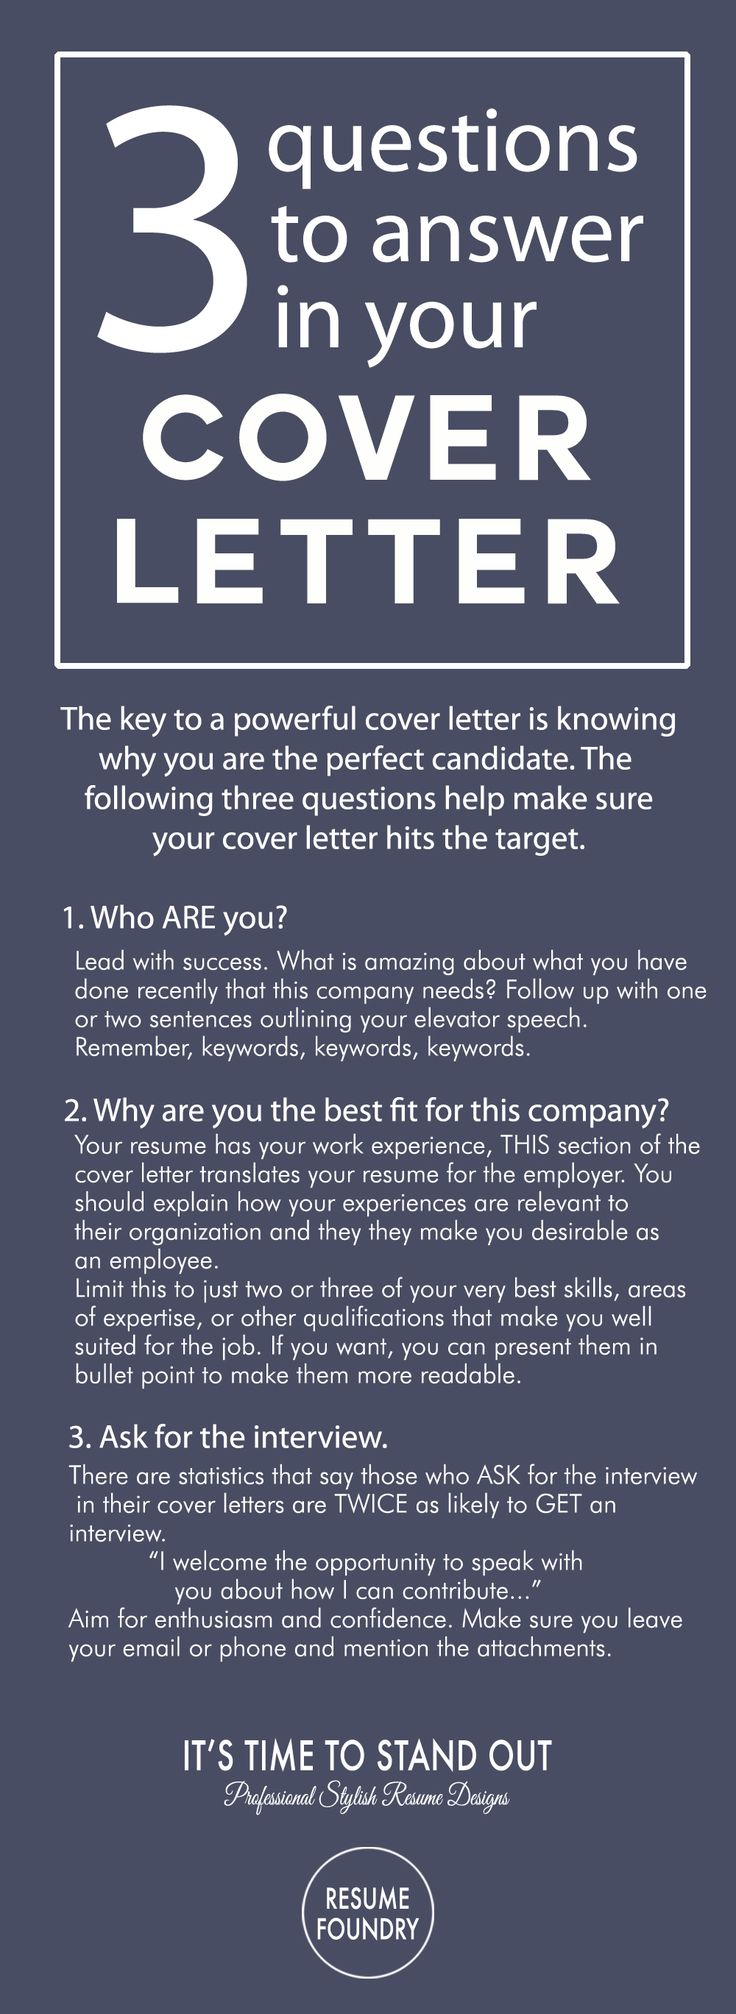 17 best ideas about interview advice interview the resume deliver it to your dream job and voila new beginnings we look forward to your success stories of landing your new job and feel